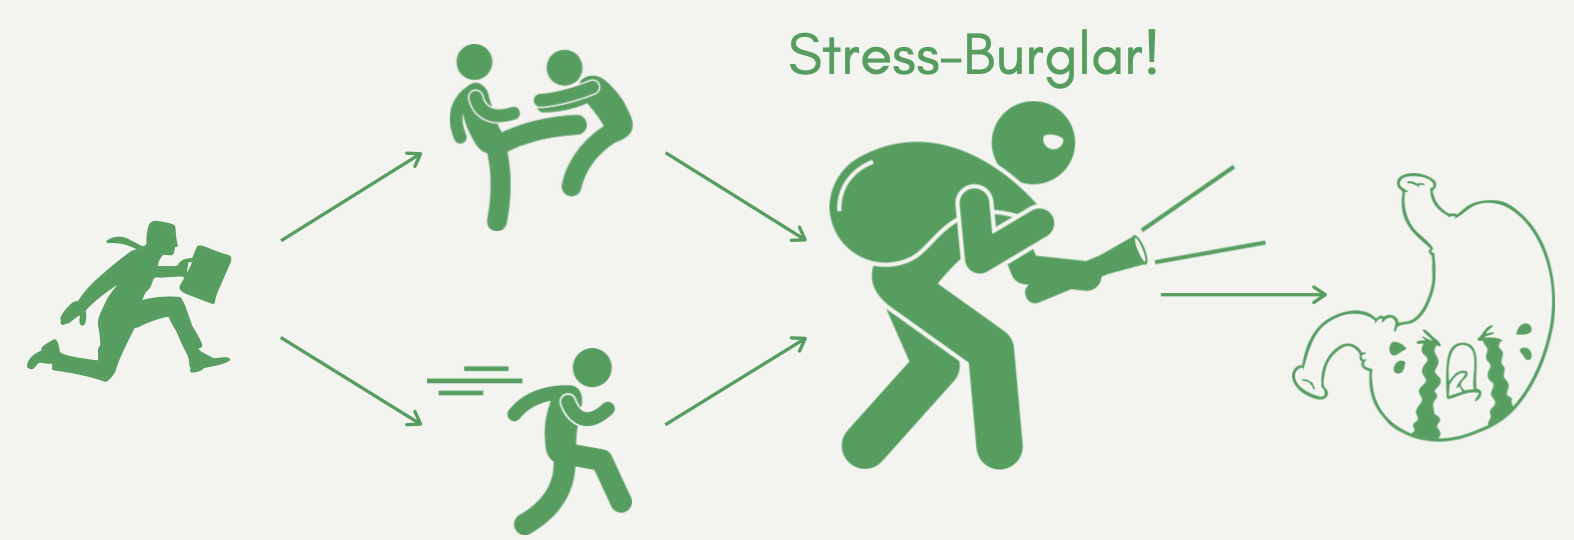 stress steals resources away from digestion